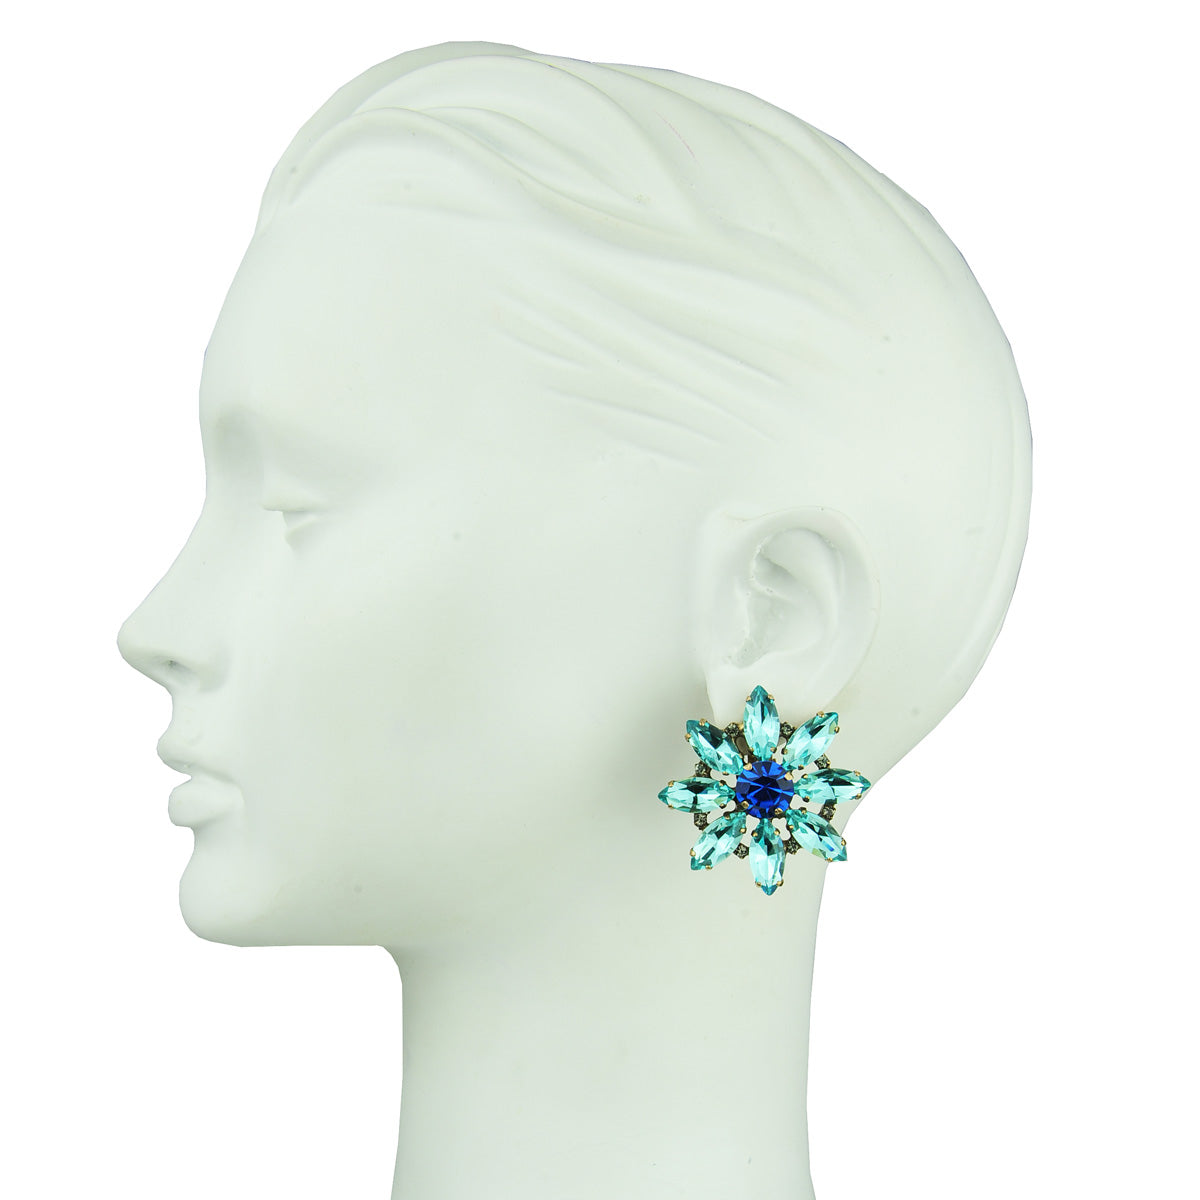 clip earrings with aqua marine crystals katerina psoma vintage rosettes